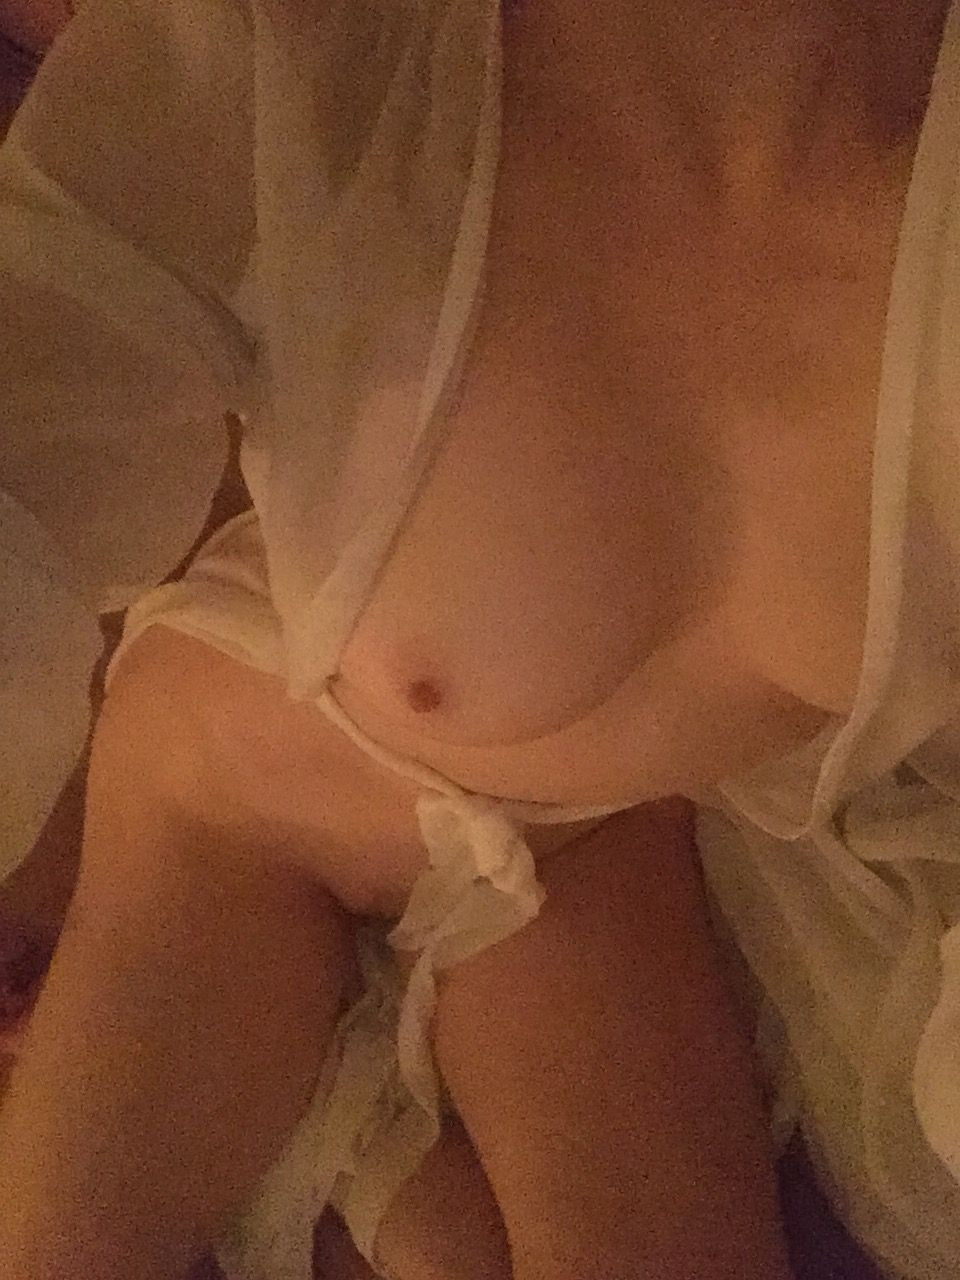 Rose McGowan Nude Leaked thefappening.nu 73